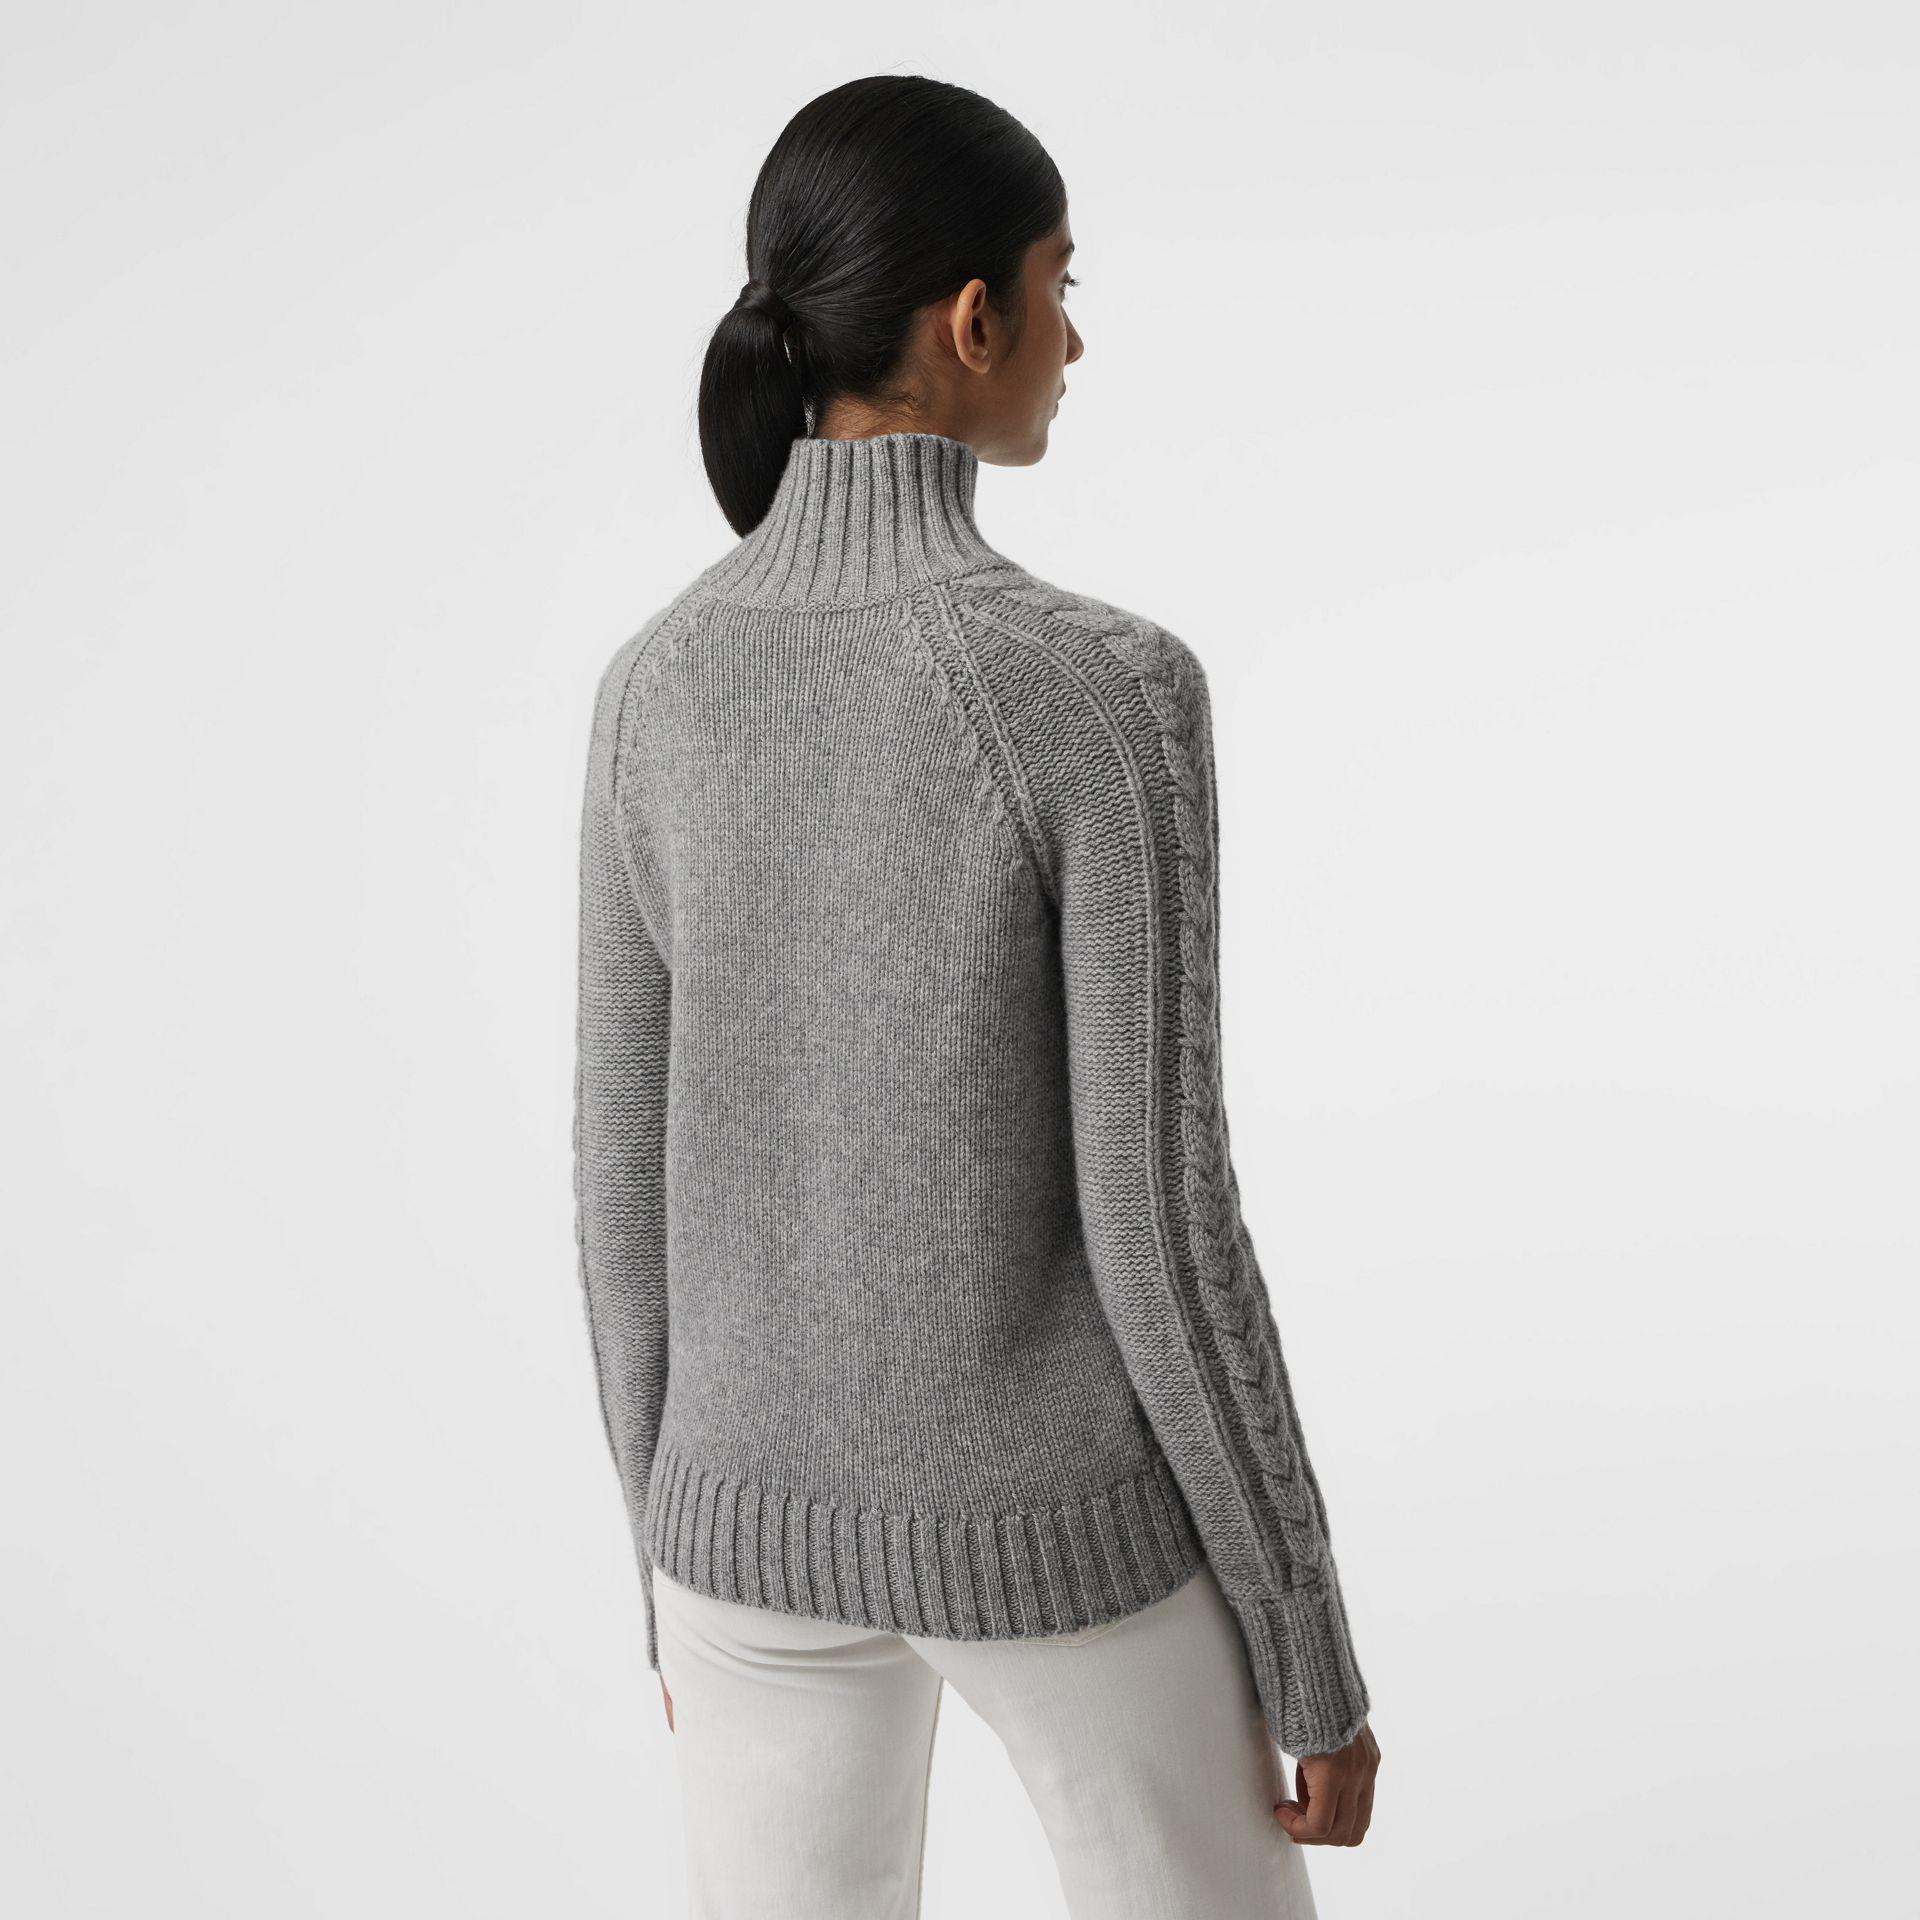 5327240f2 In In In Turtleneck Gray Lyst Cable Cable Cable Sweater Cashmere Burberry  Knit gqnXwO